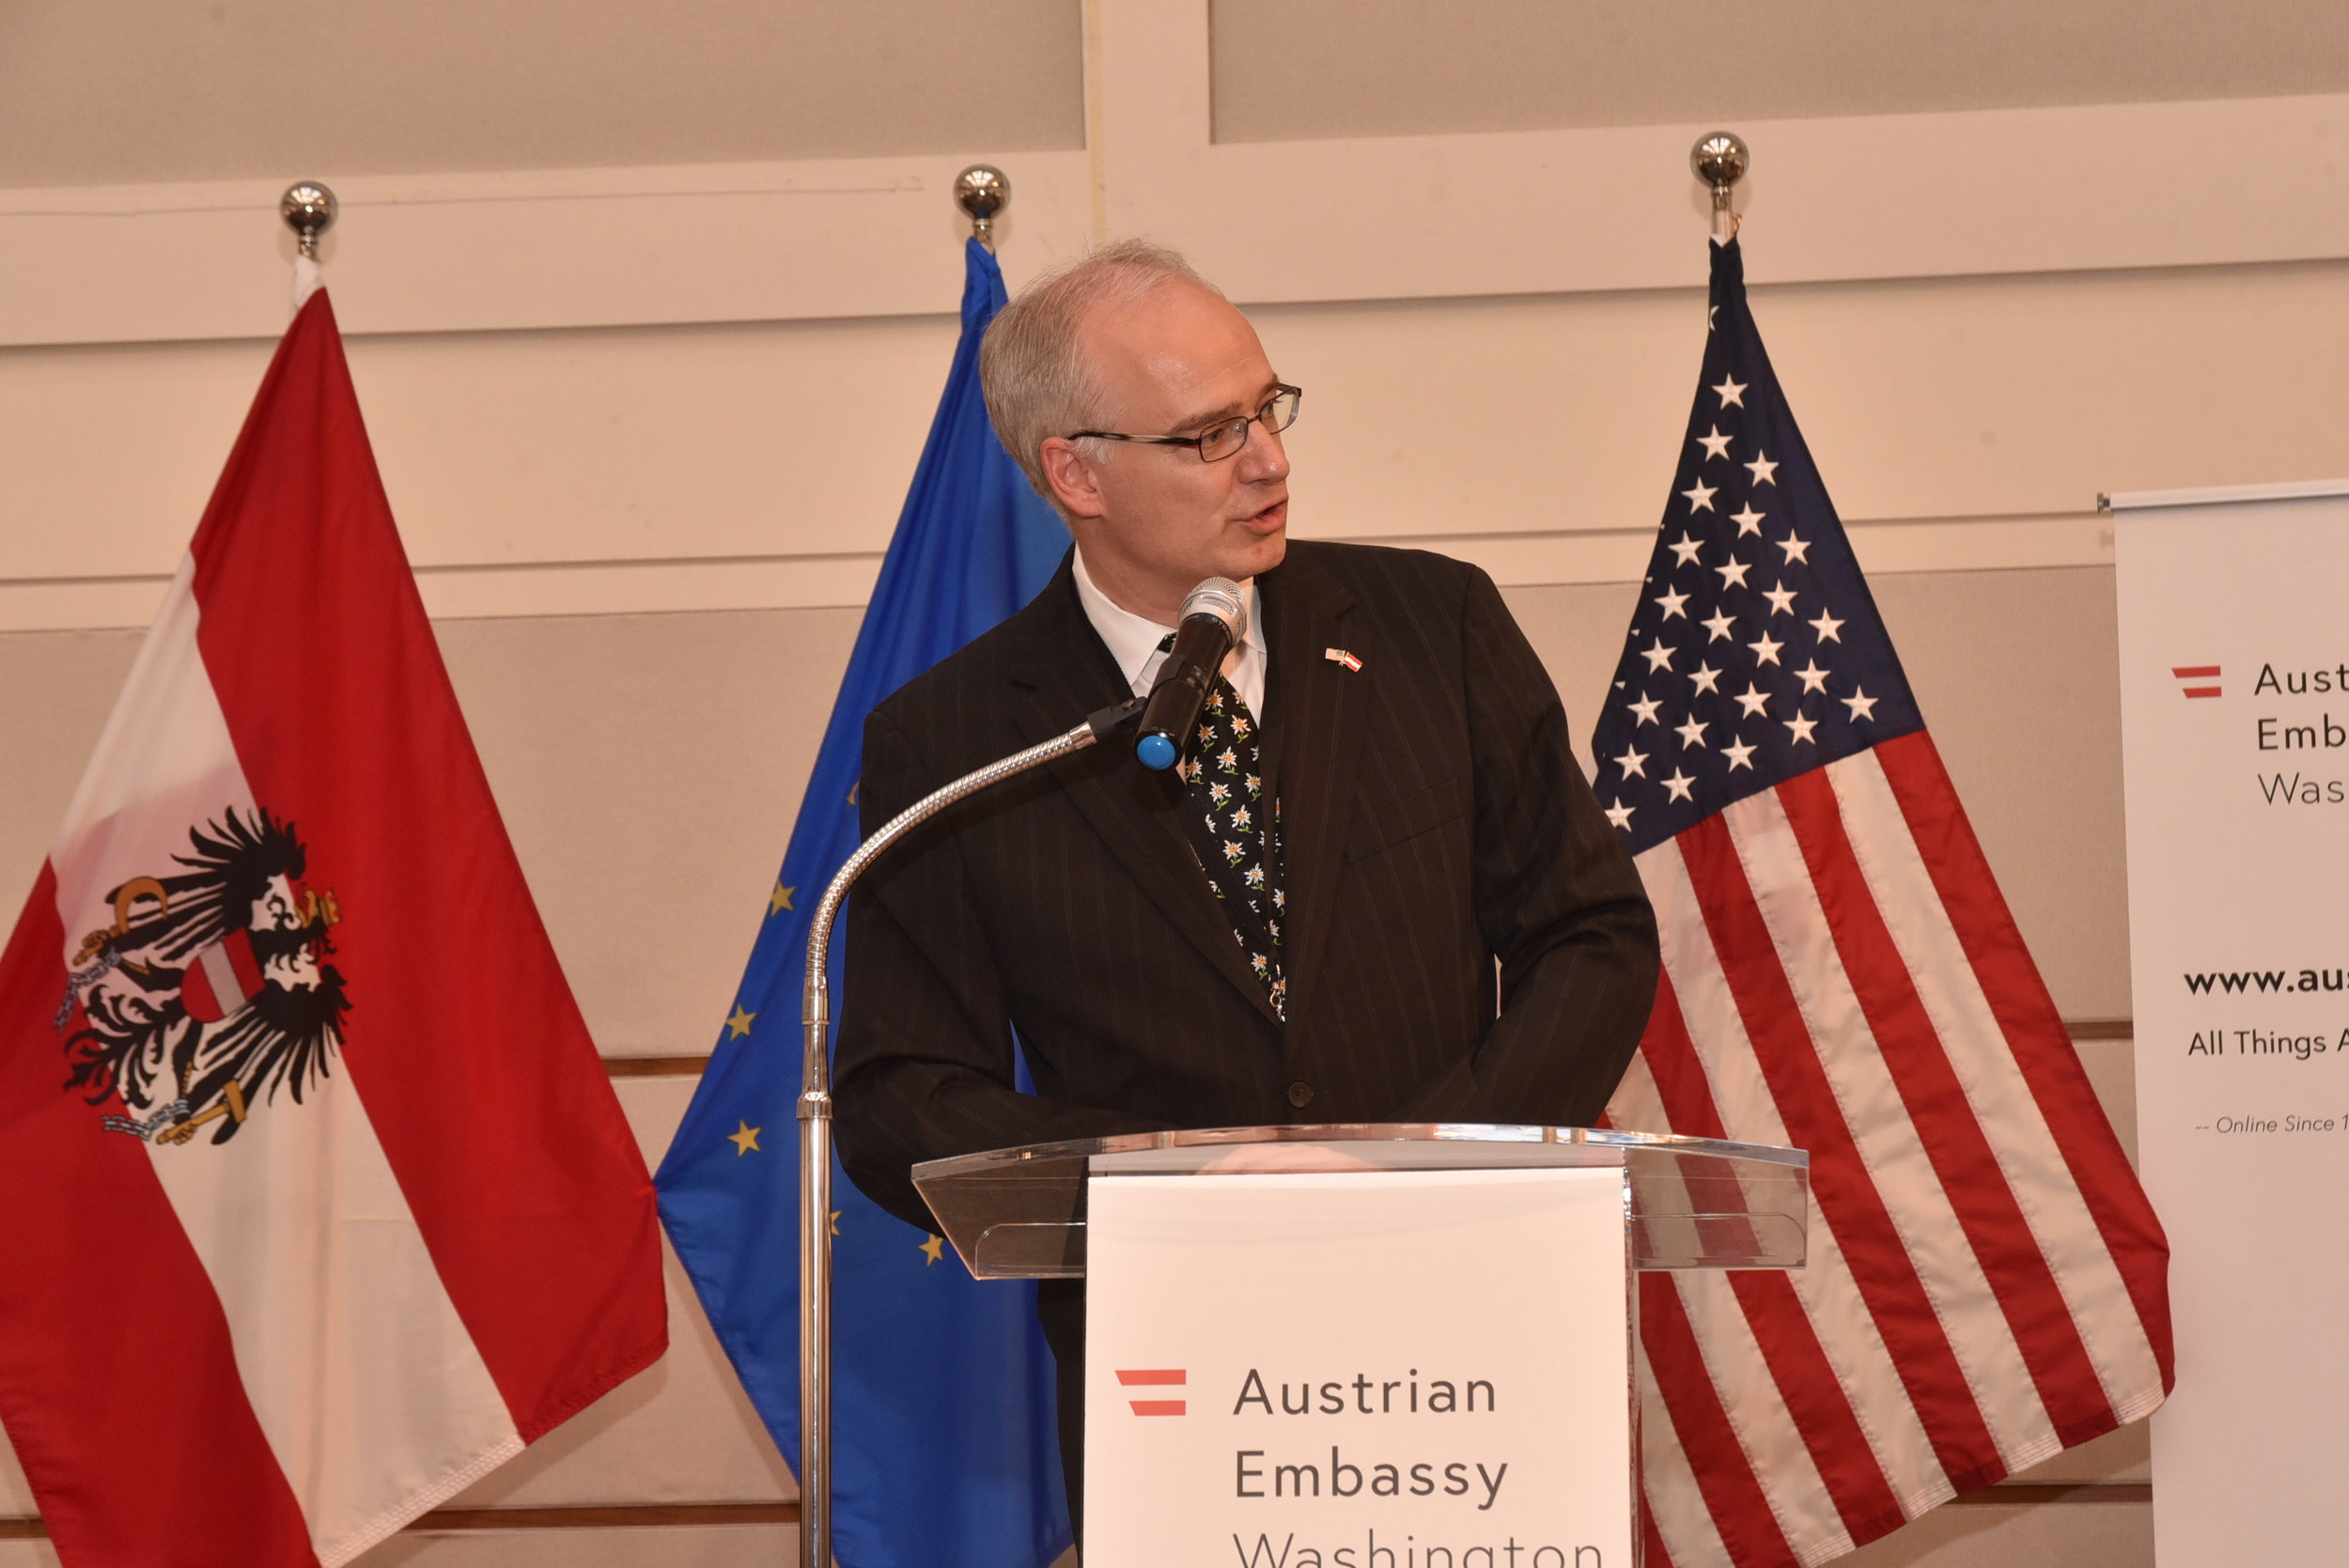 Thorsten Eisingerich, Director of the Austrian Press and Information Service, oversaw the project for the Embassy.